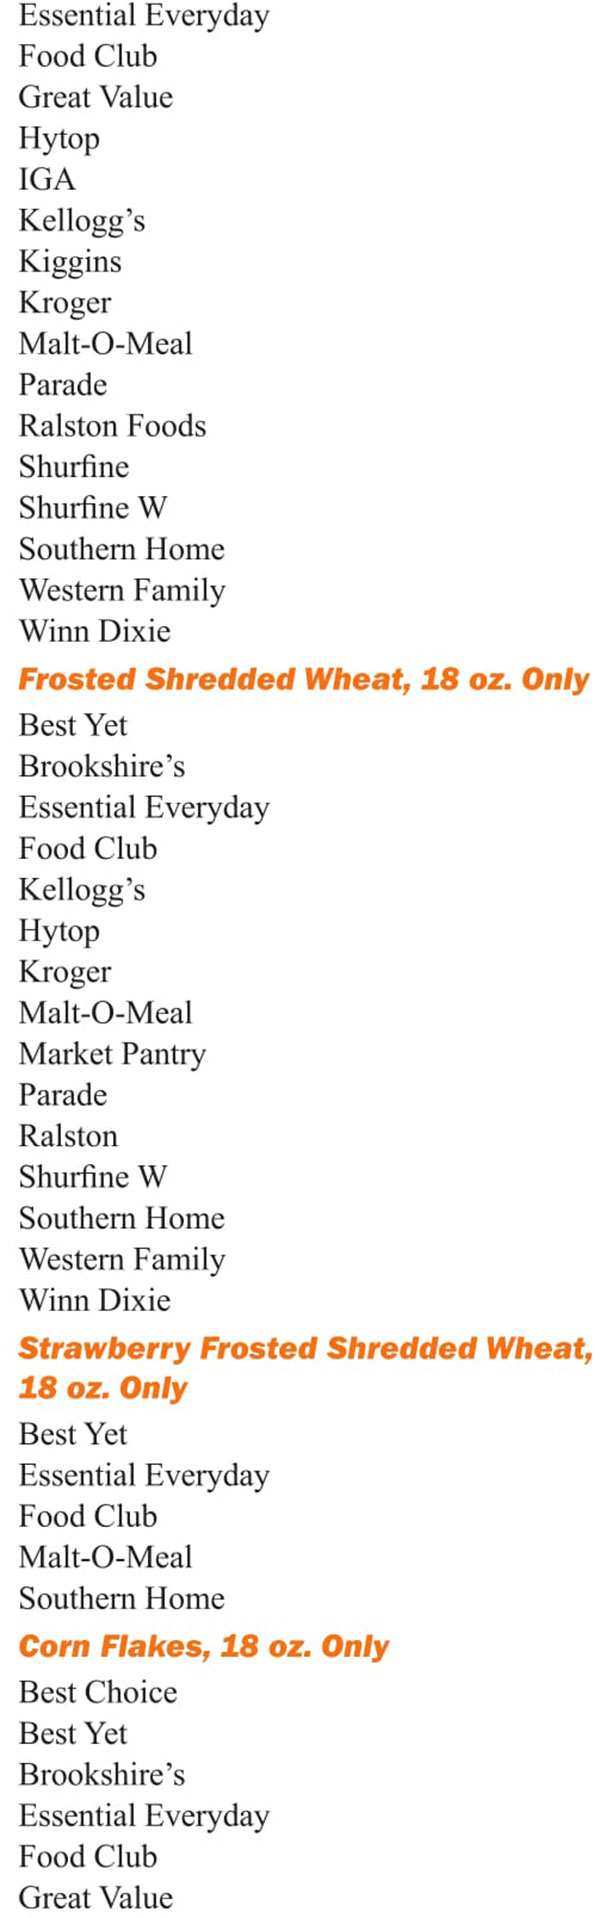 Louisiana WIC Food List Frosted Shredded Wheat, Strawberry Frosted Shredded Wheat and Corn Flakes